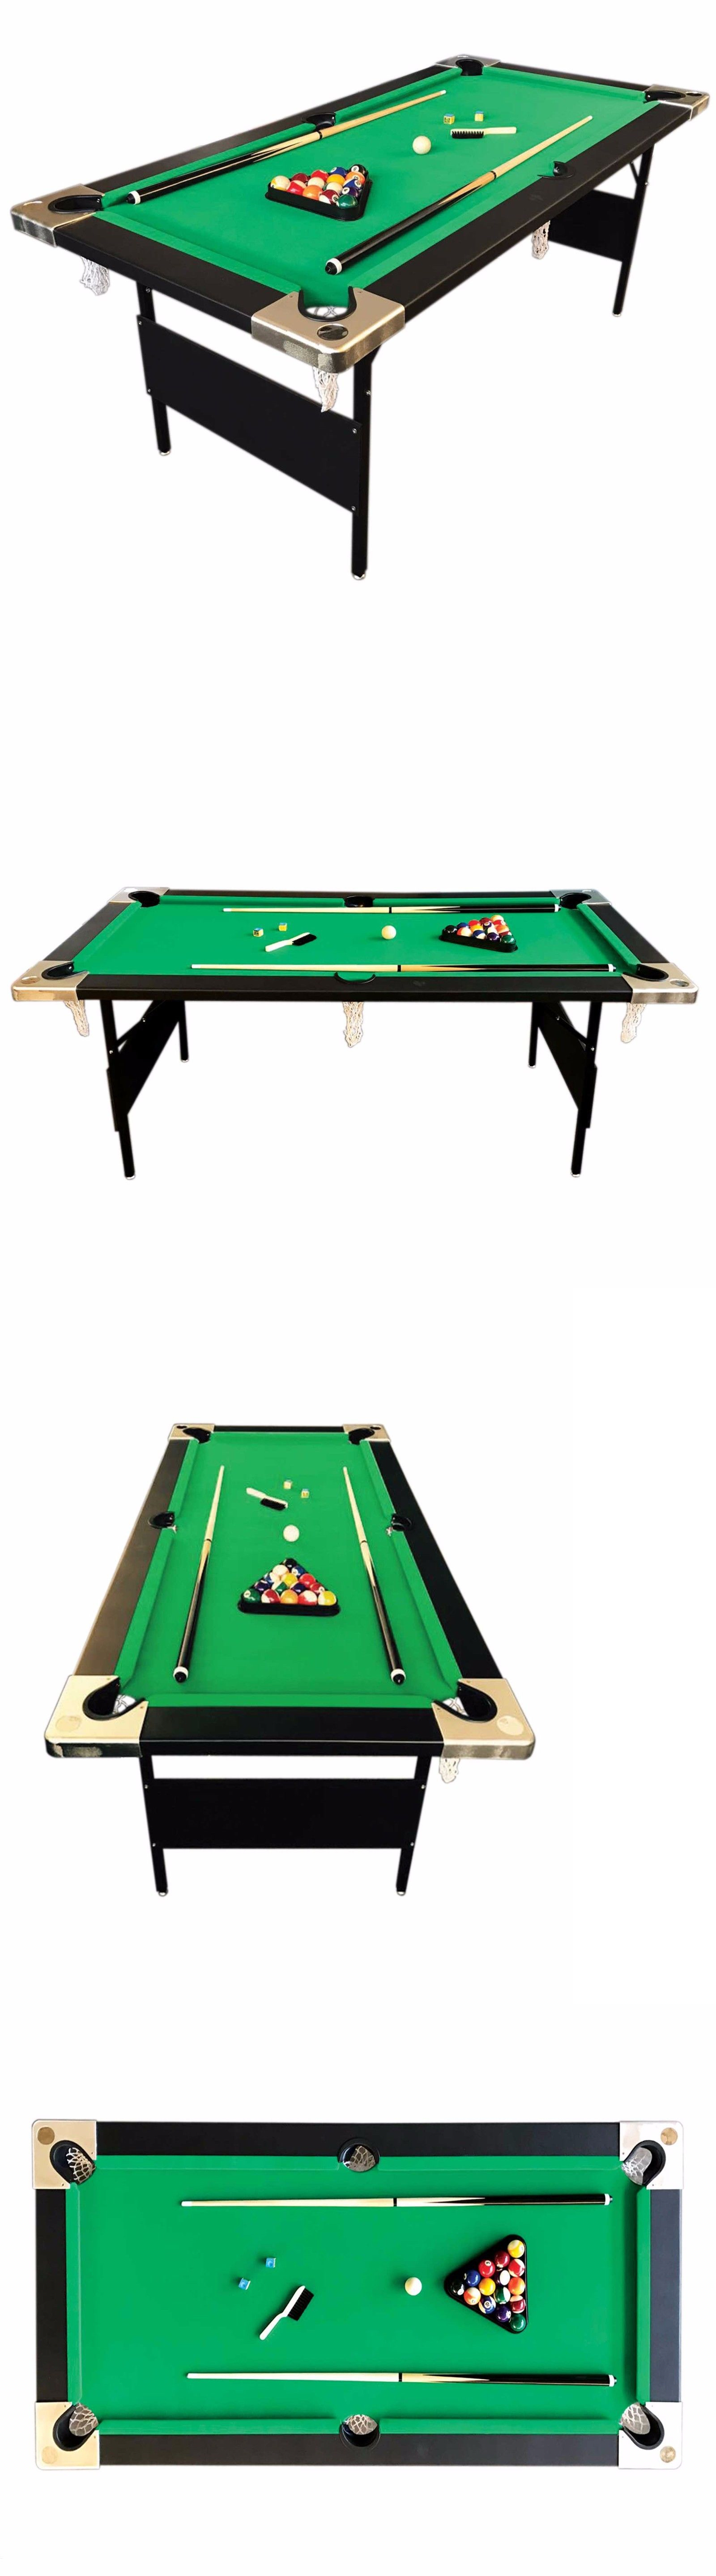 Pool table legs accessories for sale - Tables 21213 6 Feet Billiard Pool Table Portable Snooker Accessories Included Game Colorado